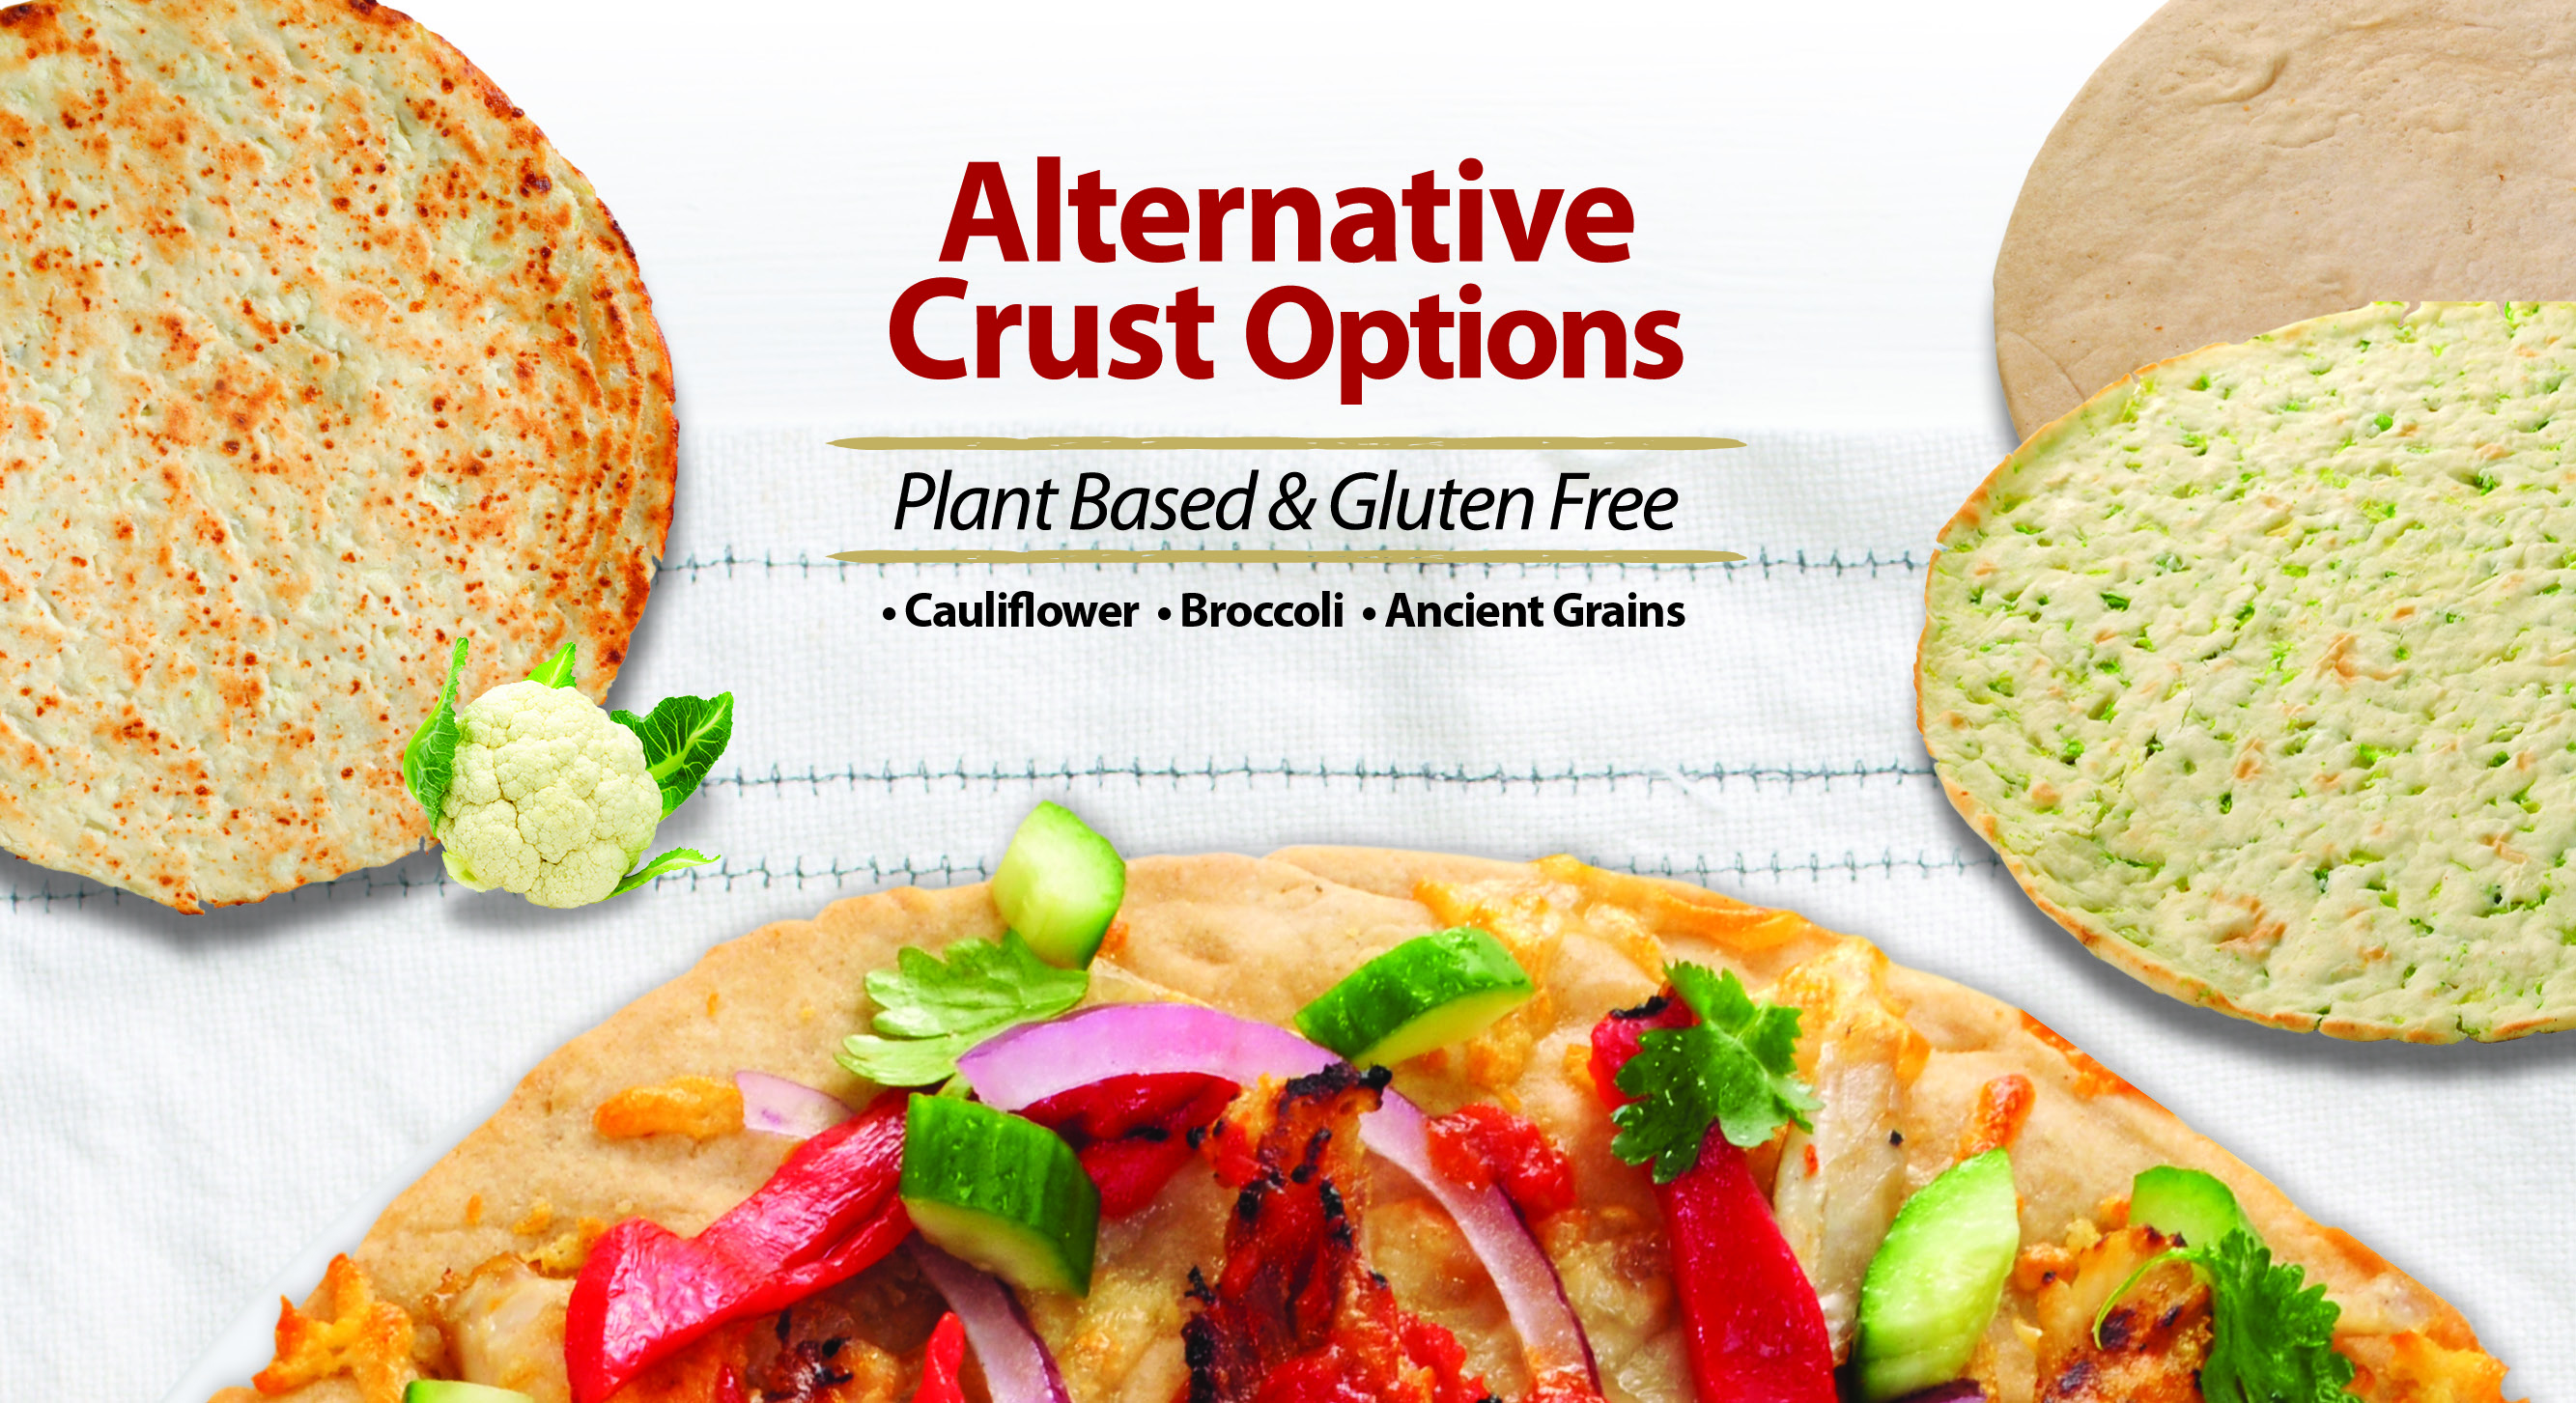 Alternative Crusts